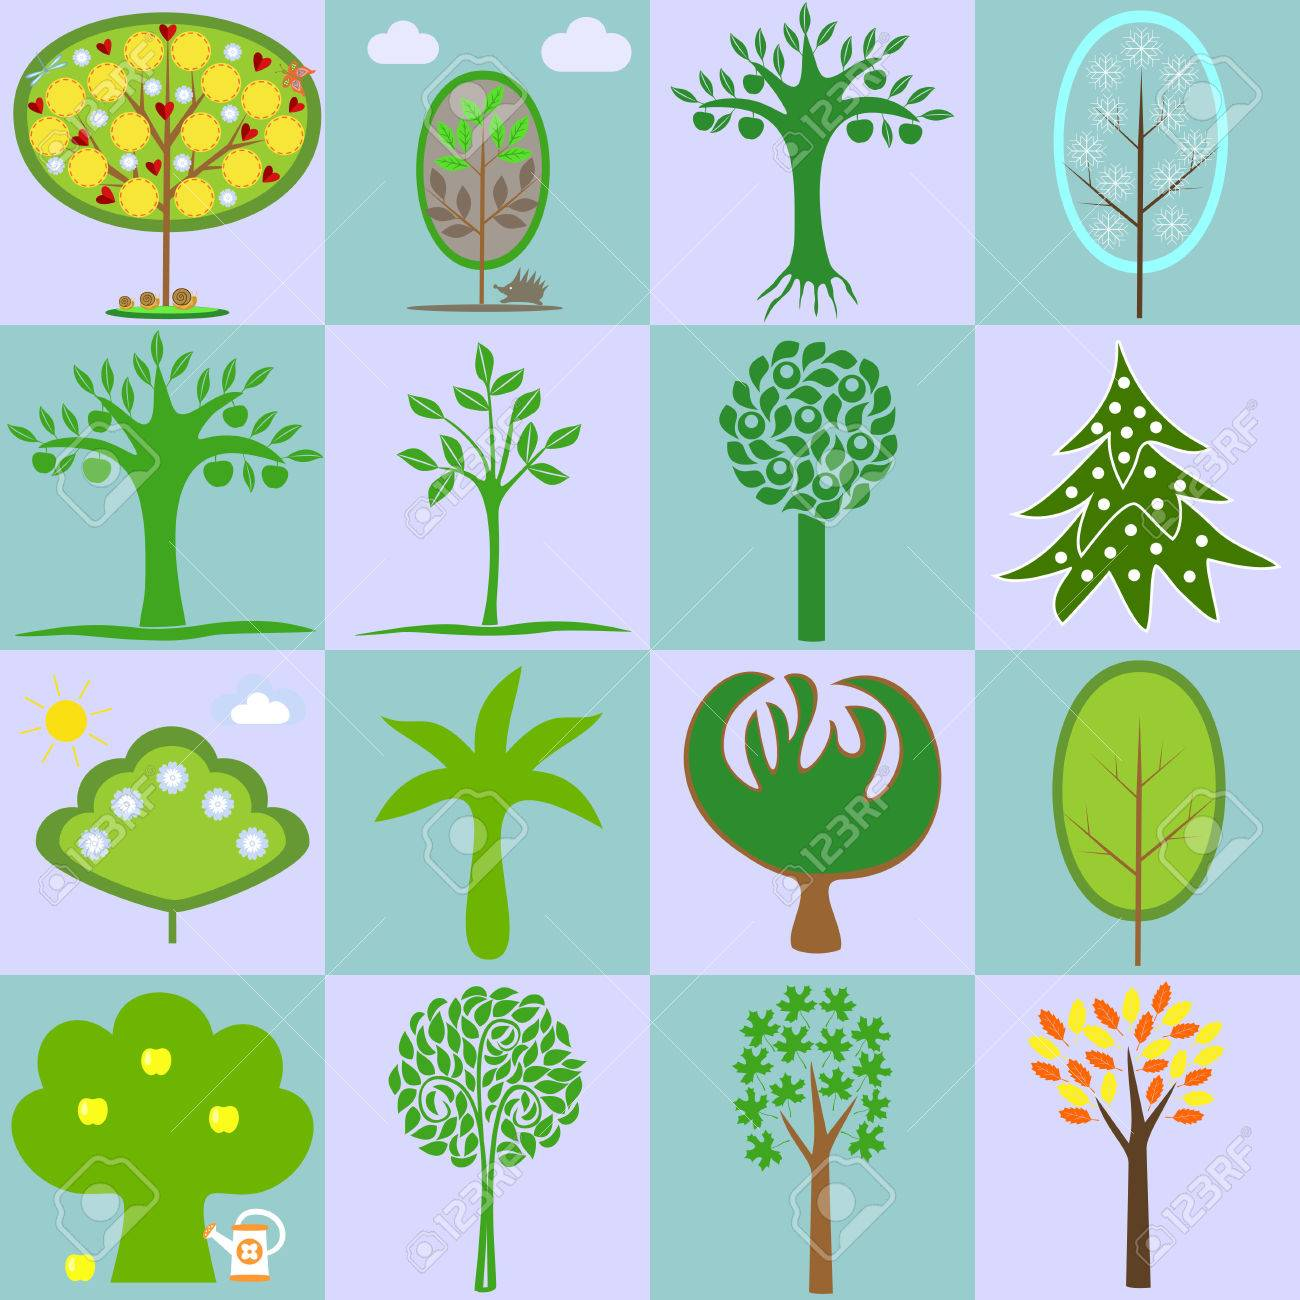 icons with different types of trees in different seasons